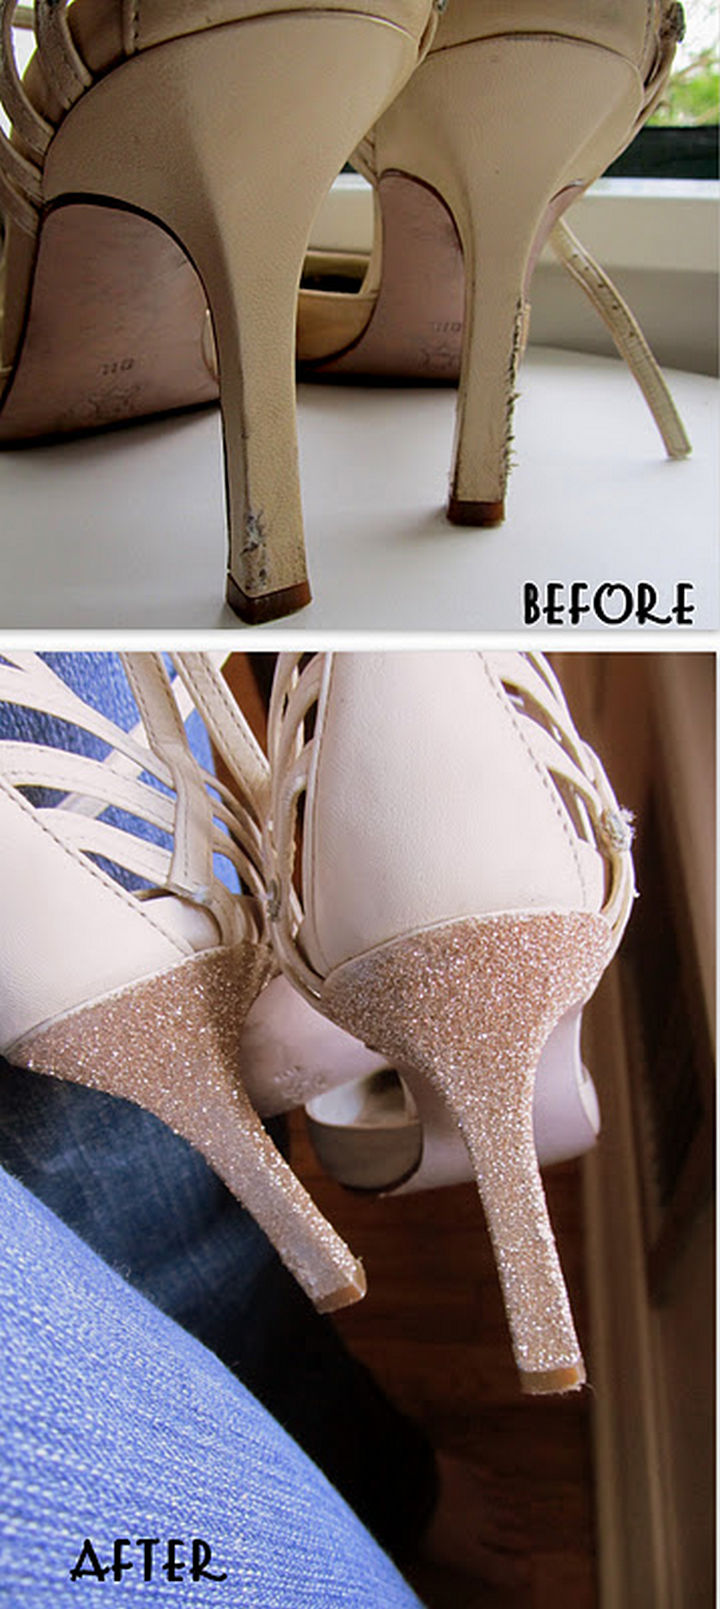 22 Kickass Life Hacks for Girls - Give worn heels a new look.